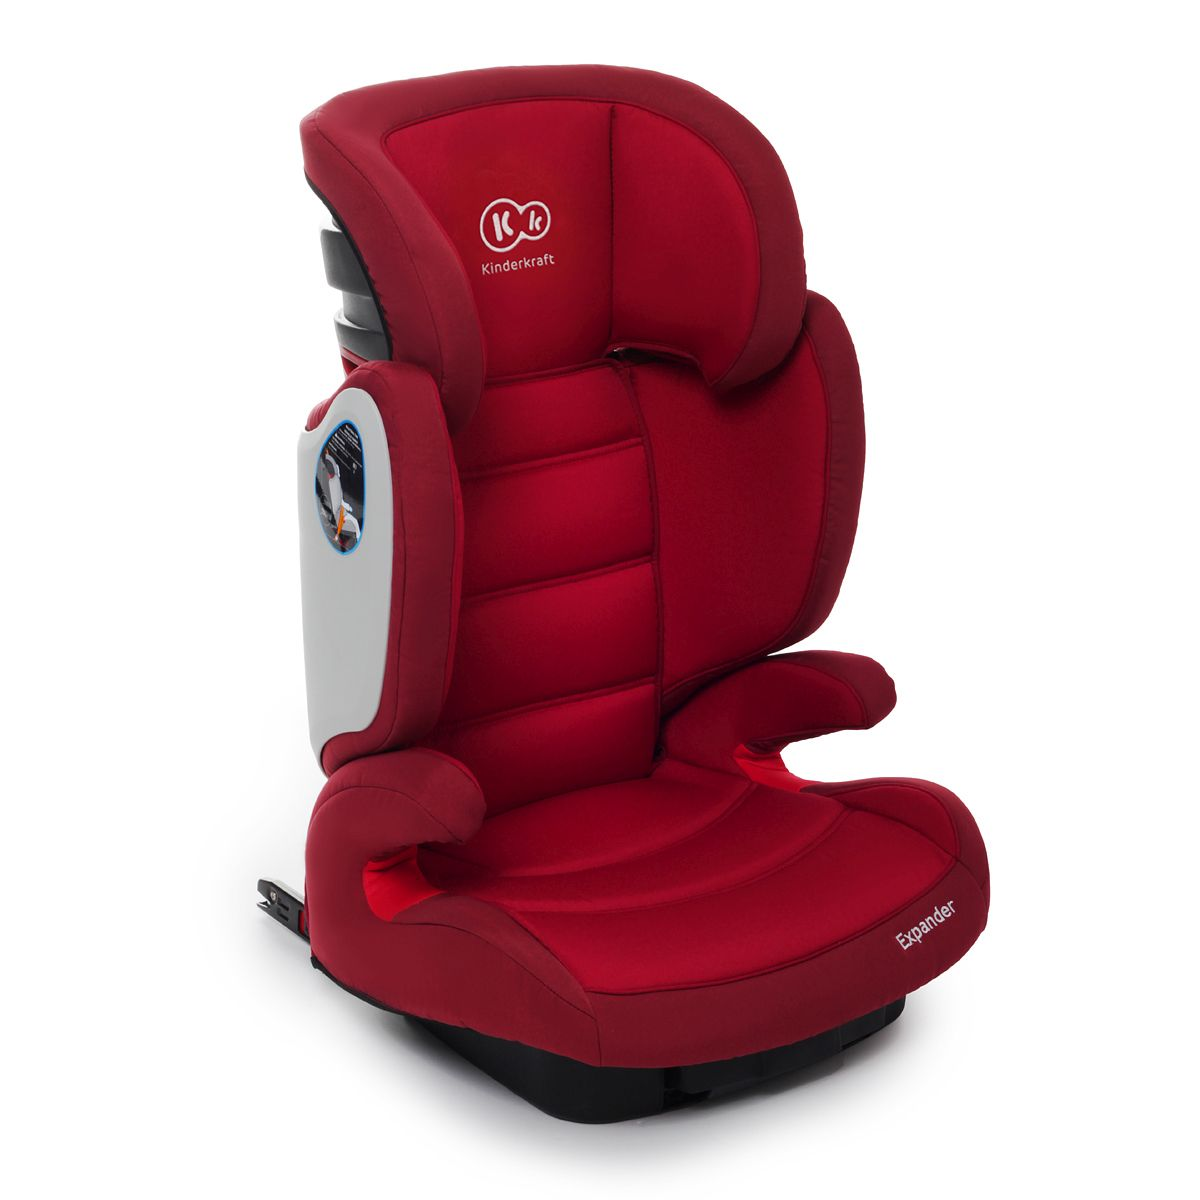 si ge voiture pour b b isofix chaise pour enfant si ge de voiture 15 de 36 kg ebay. Black Bedroom Furniture Sets. Home Design Ideas